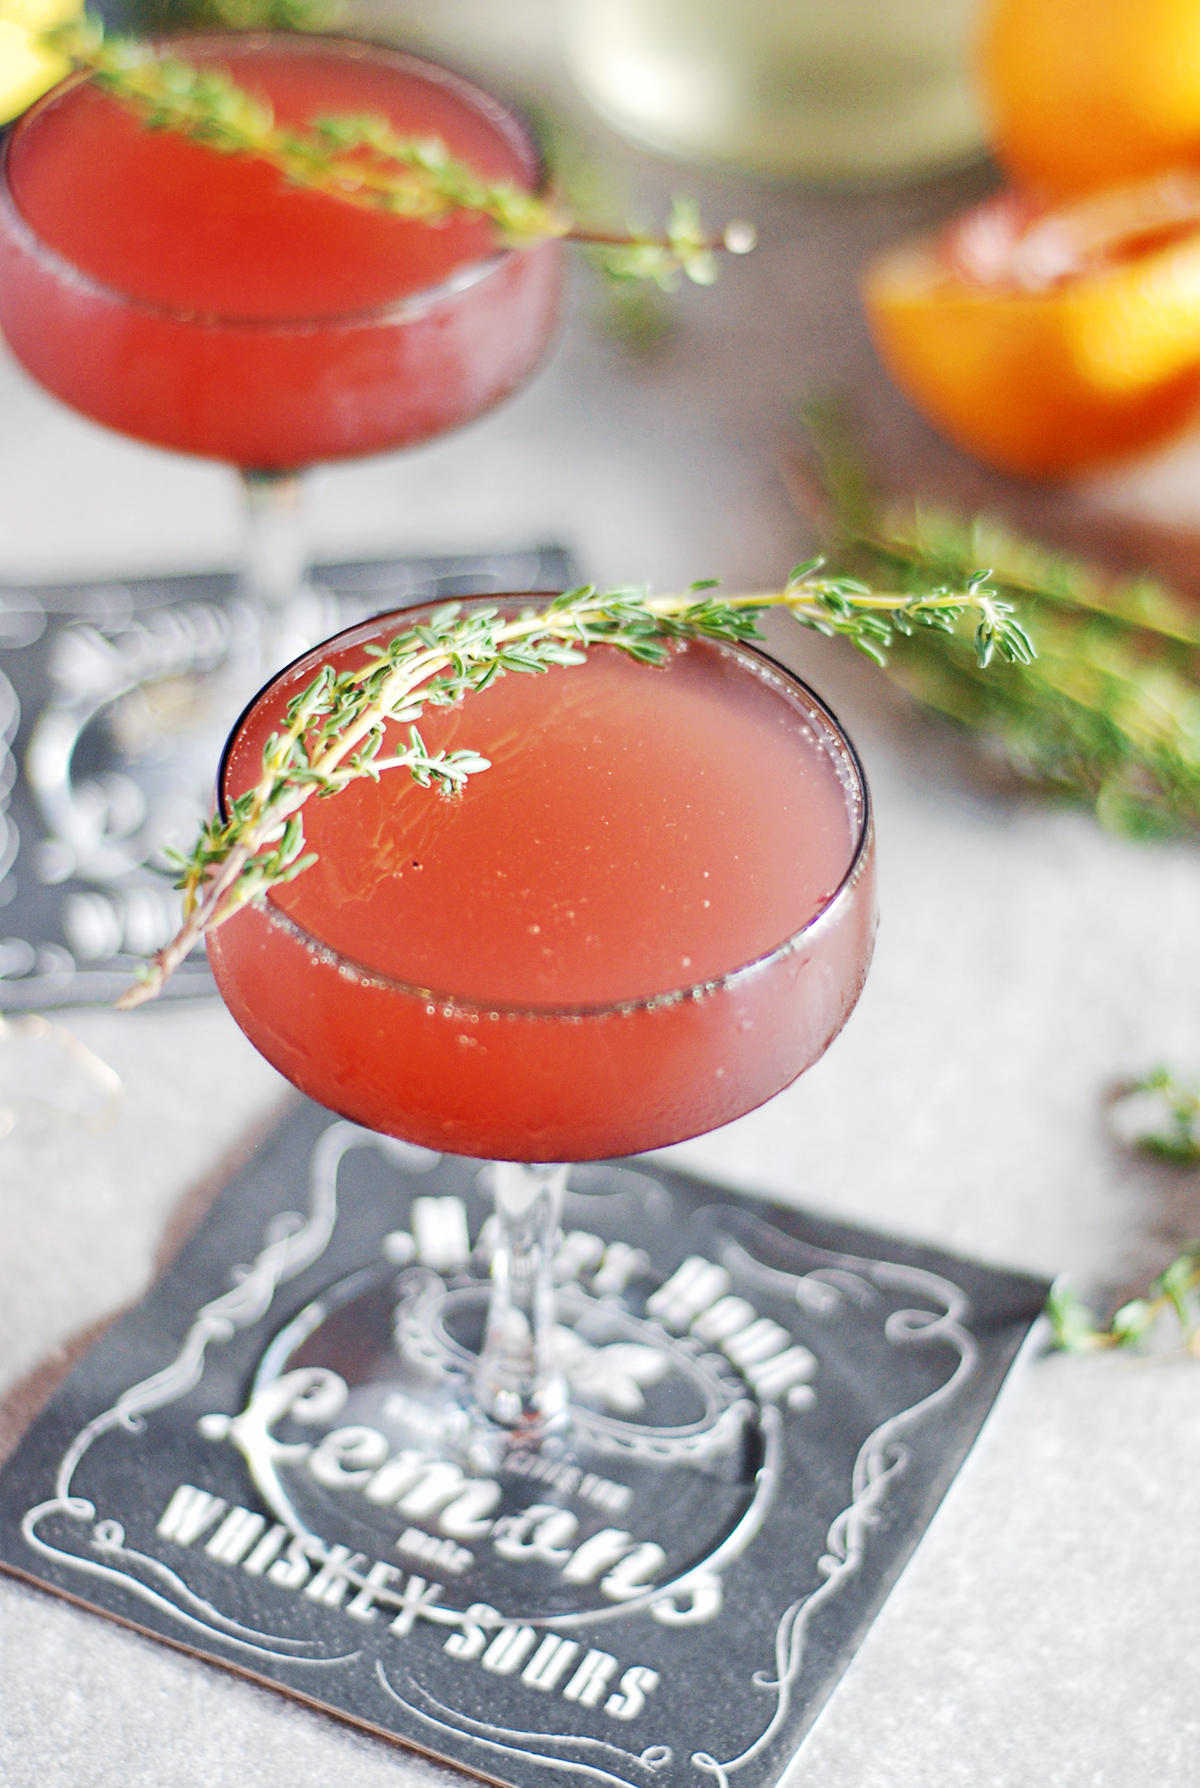 These blood orange mimosas are a beautiful twist on a classic brunch cocktail, and feature thyme simple syrup and gin.